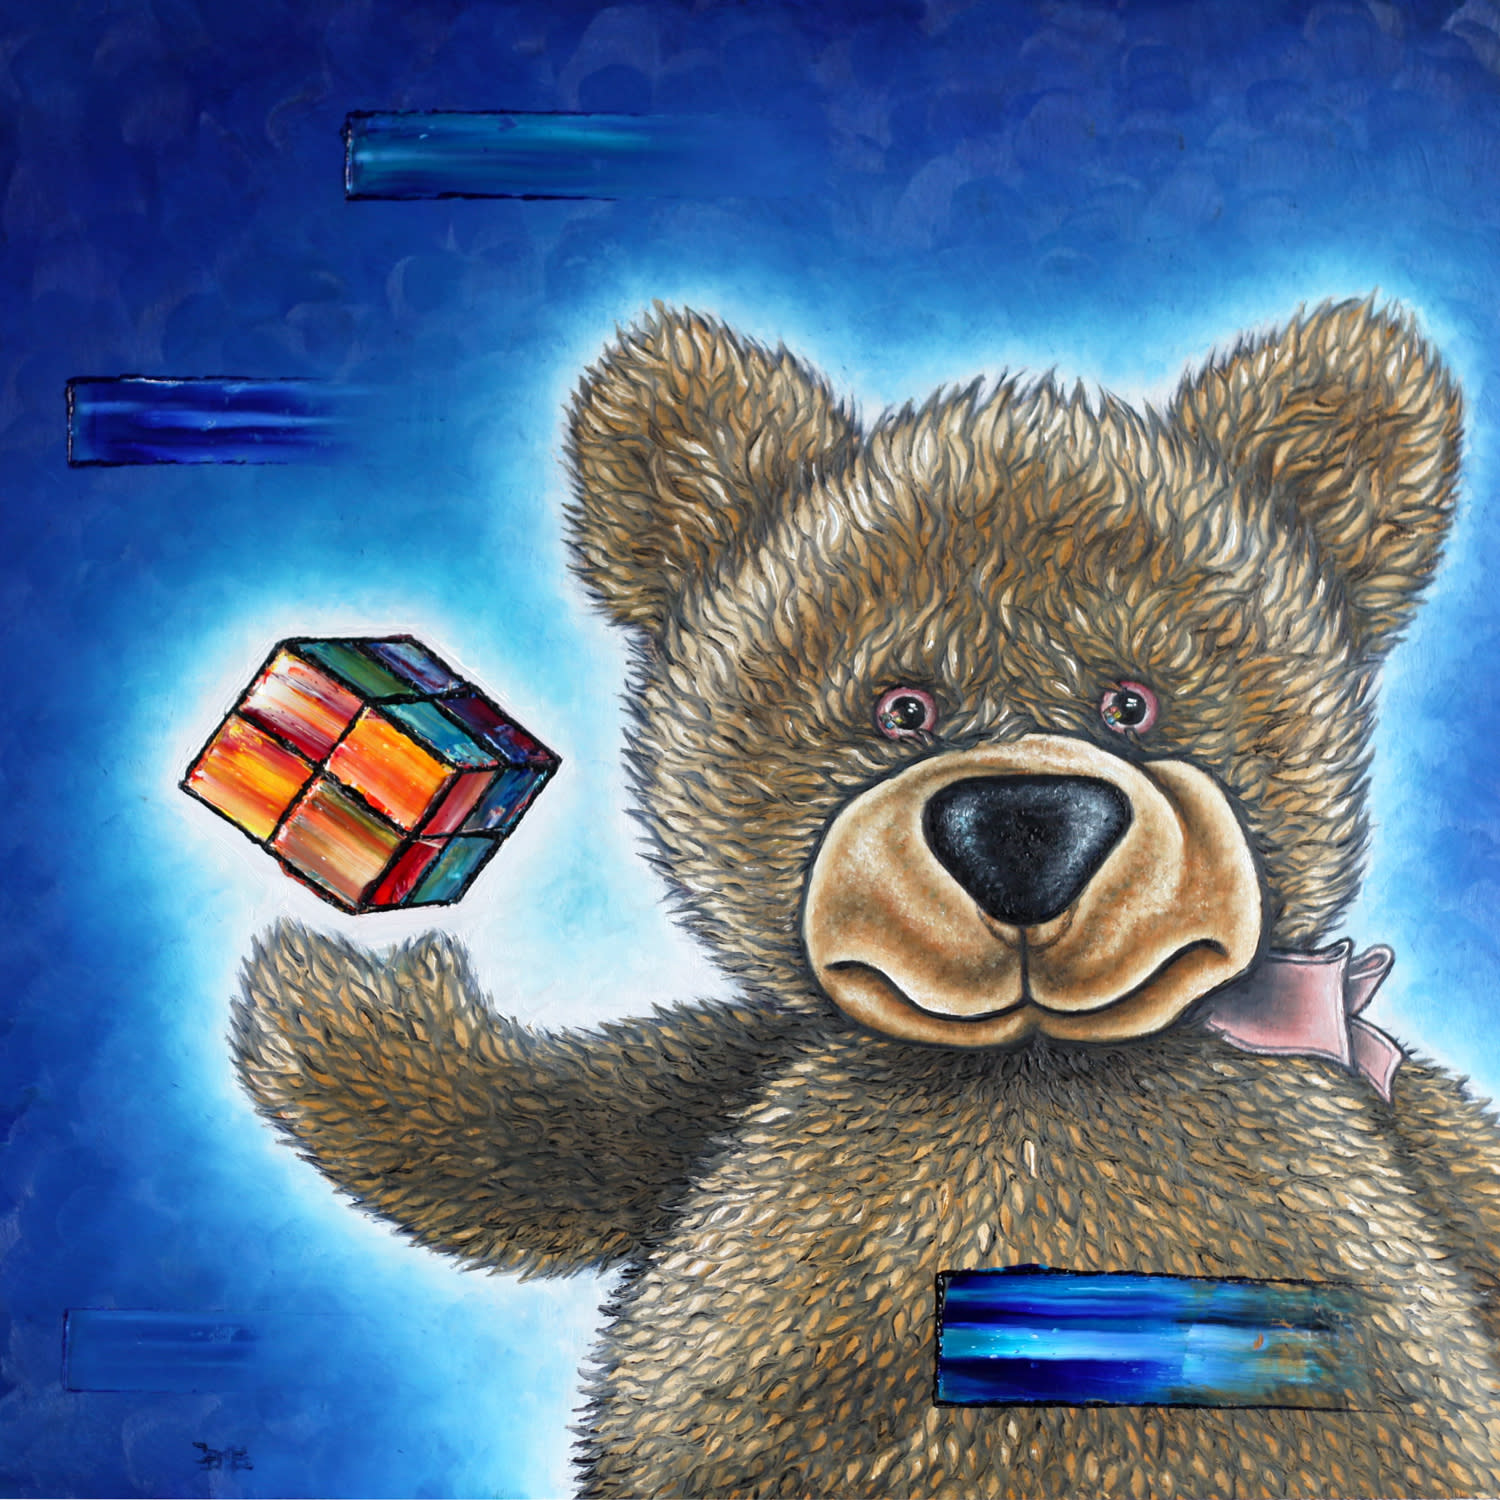 The little bear discovers the secret smaller oni8lw